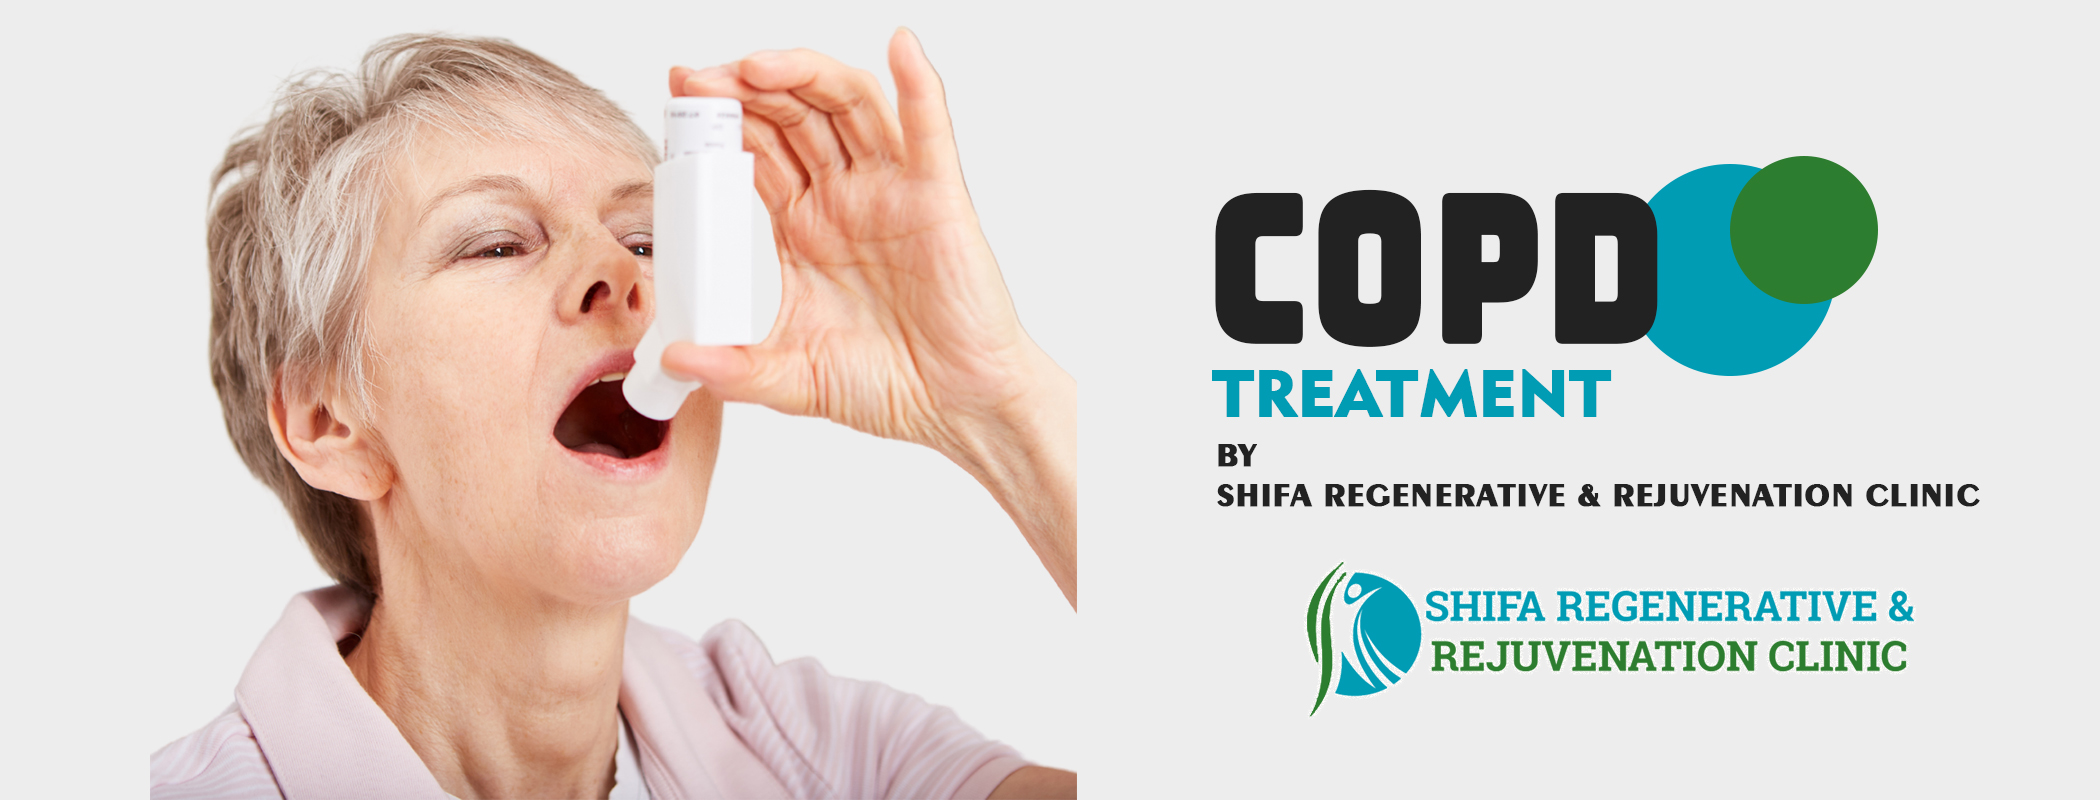 COPD Treatment - Shifa Regenerative and Rejuvenation Clinic